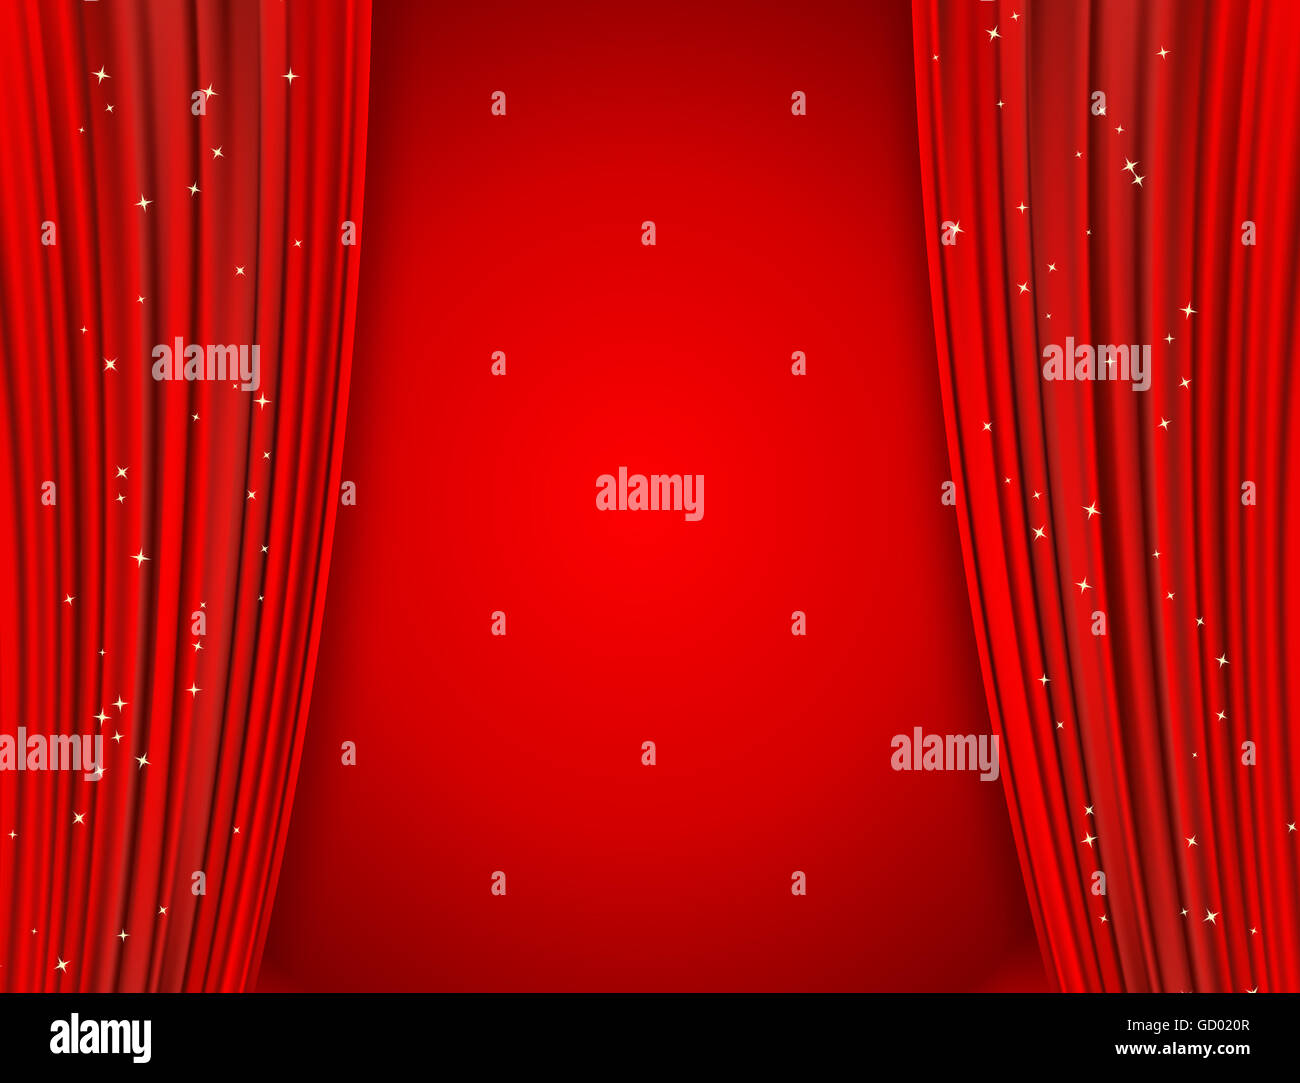 Red Curtains On Red Background With Glittering Stars Open Curtains Stock Photo Royalty Free